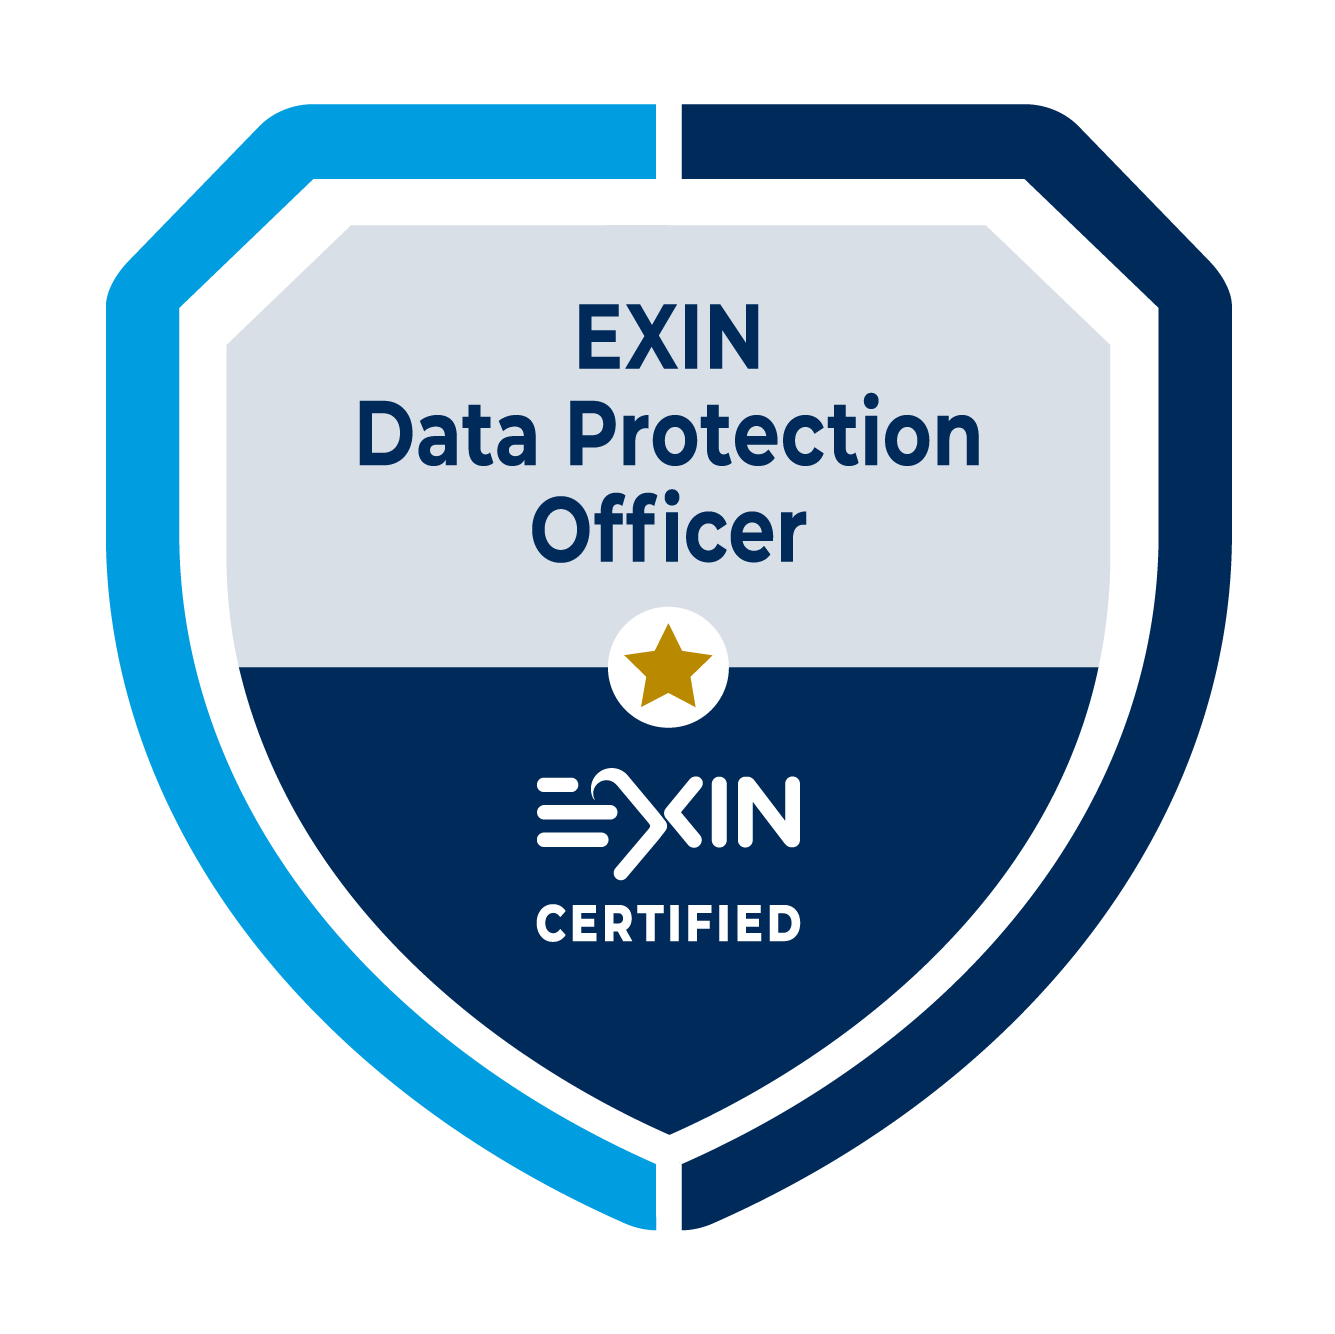 Digital Badge EXIN Certified Data Protection Officer